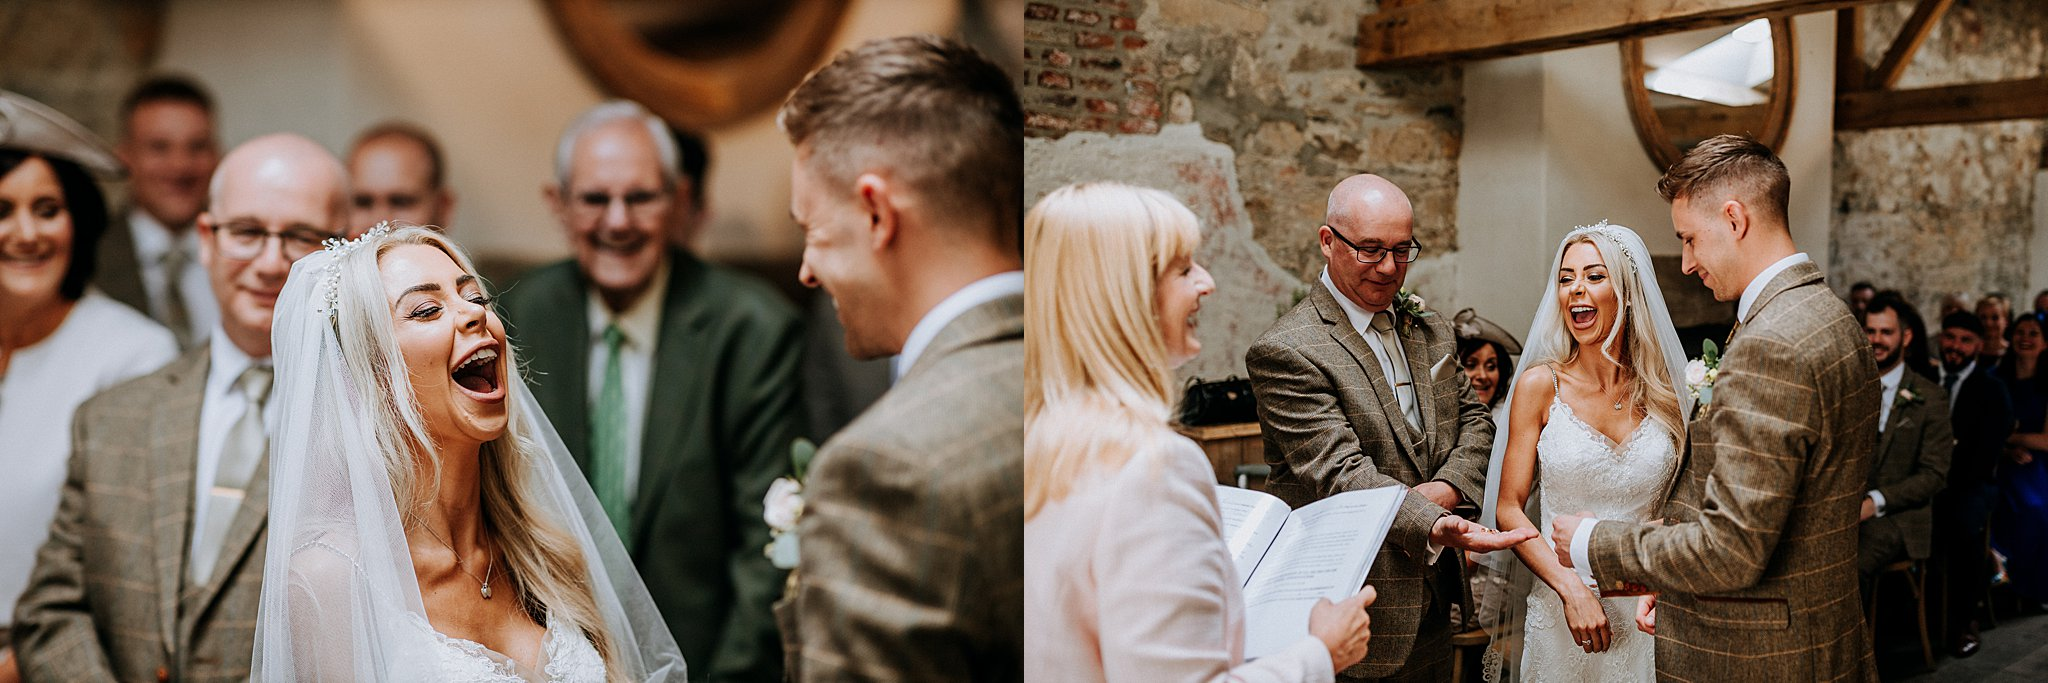 Natural Wedding photographers middleton lodge